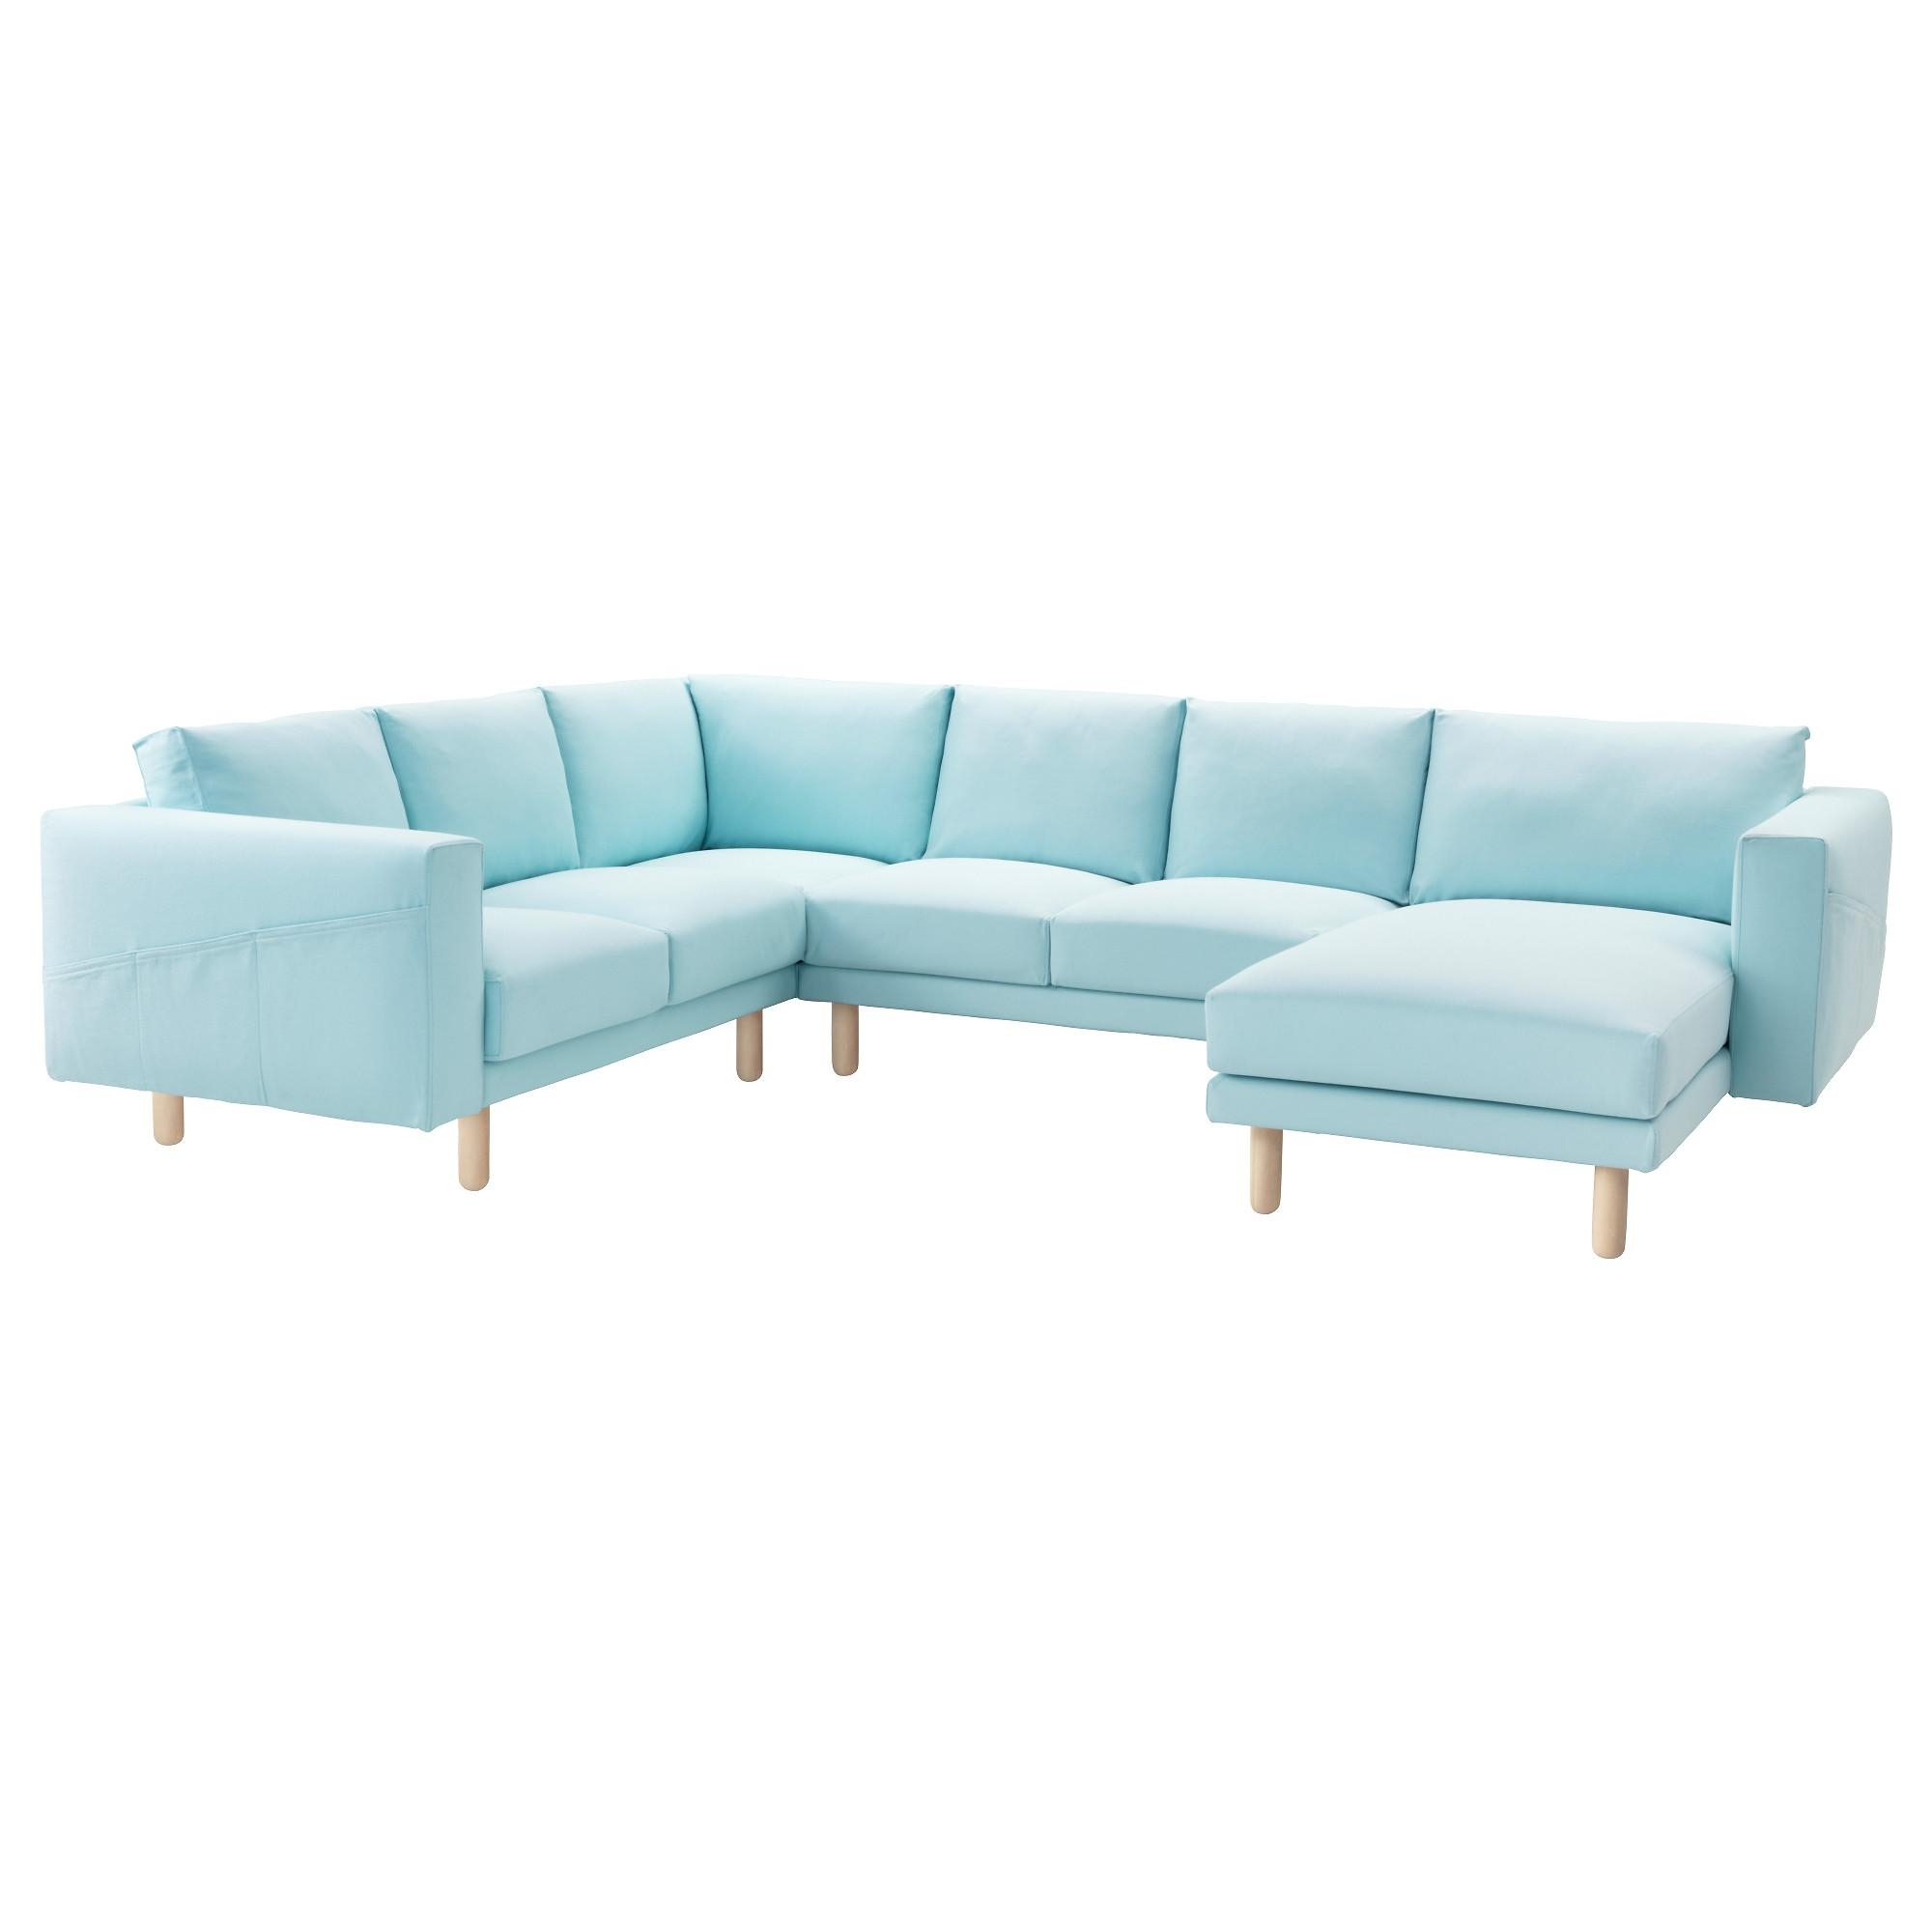 20 Choices Of Corner Sofas Sofa Ideas